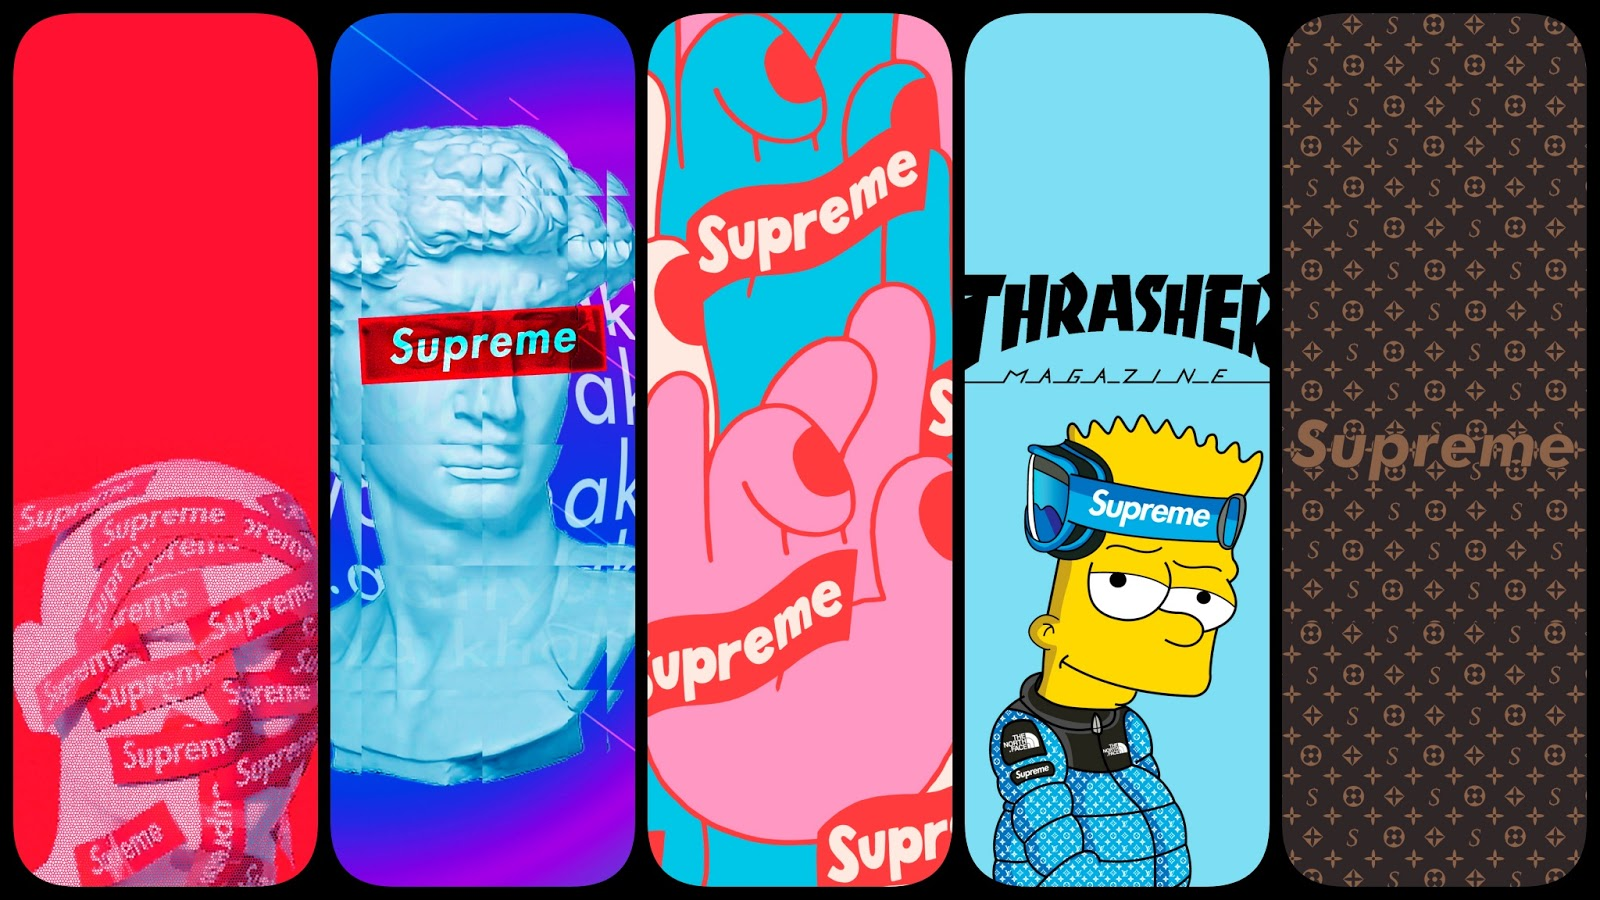 Supreme phone wallpaper collection